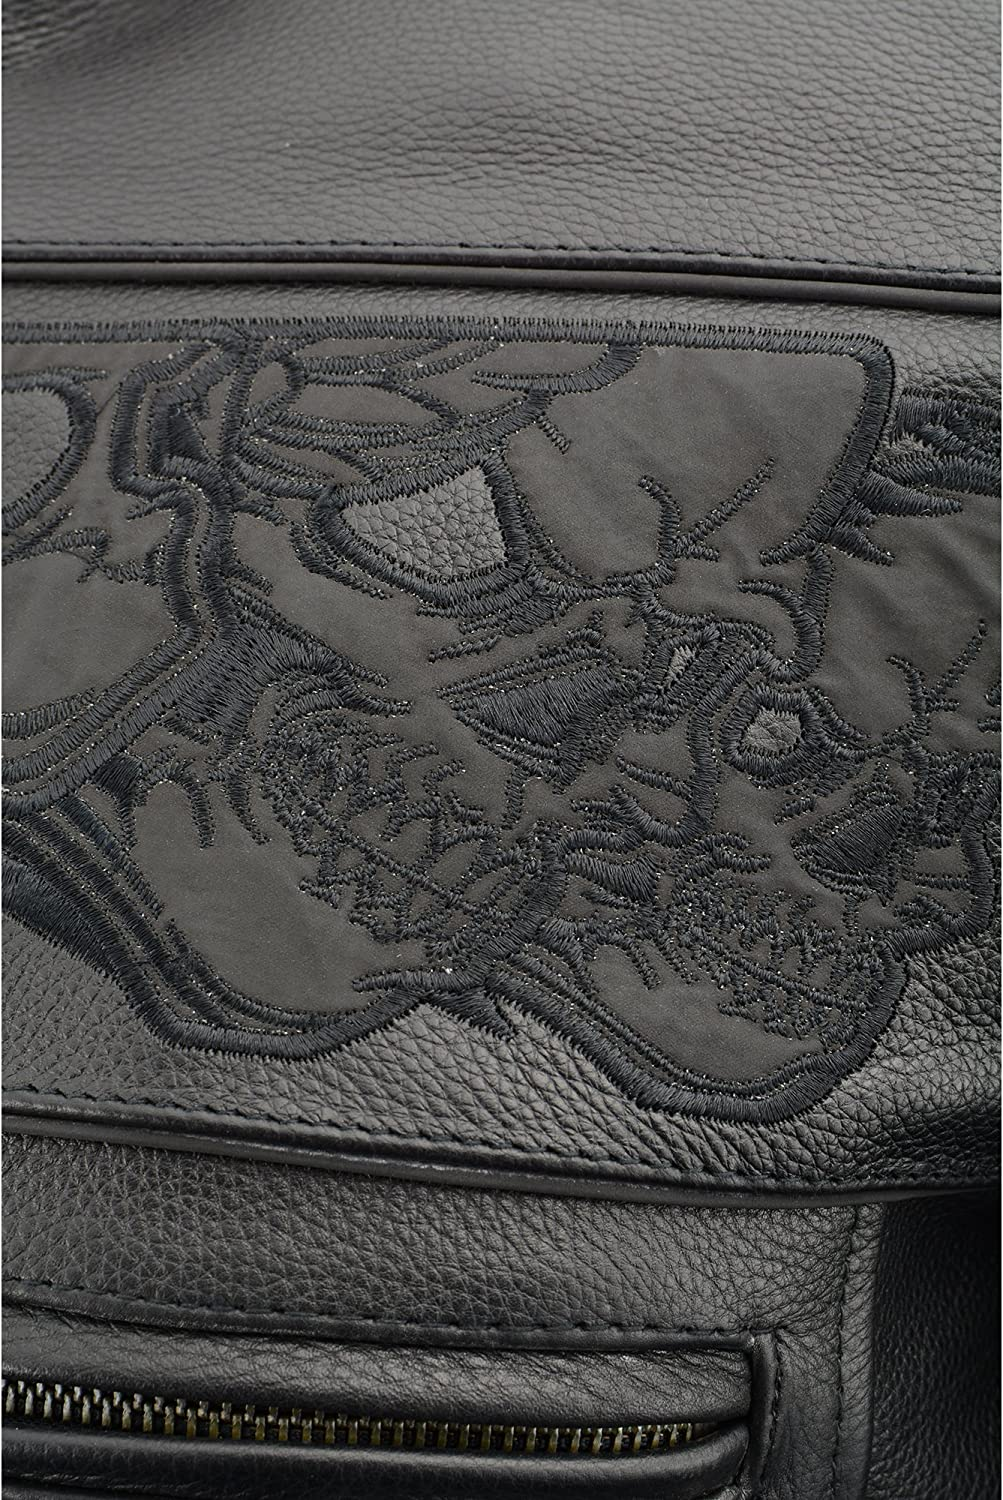 Black, XXX-Large Milwaukee Mens Crossover Scooter Jacket with Reflective Skulls